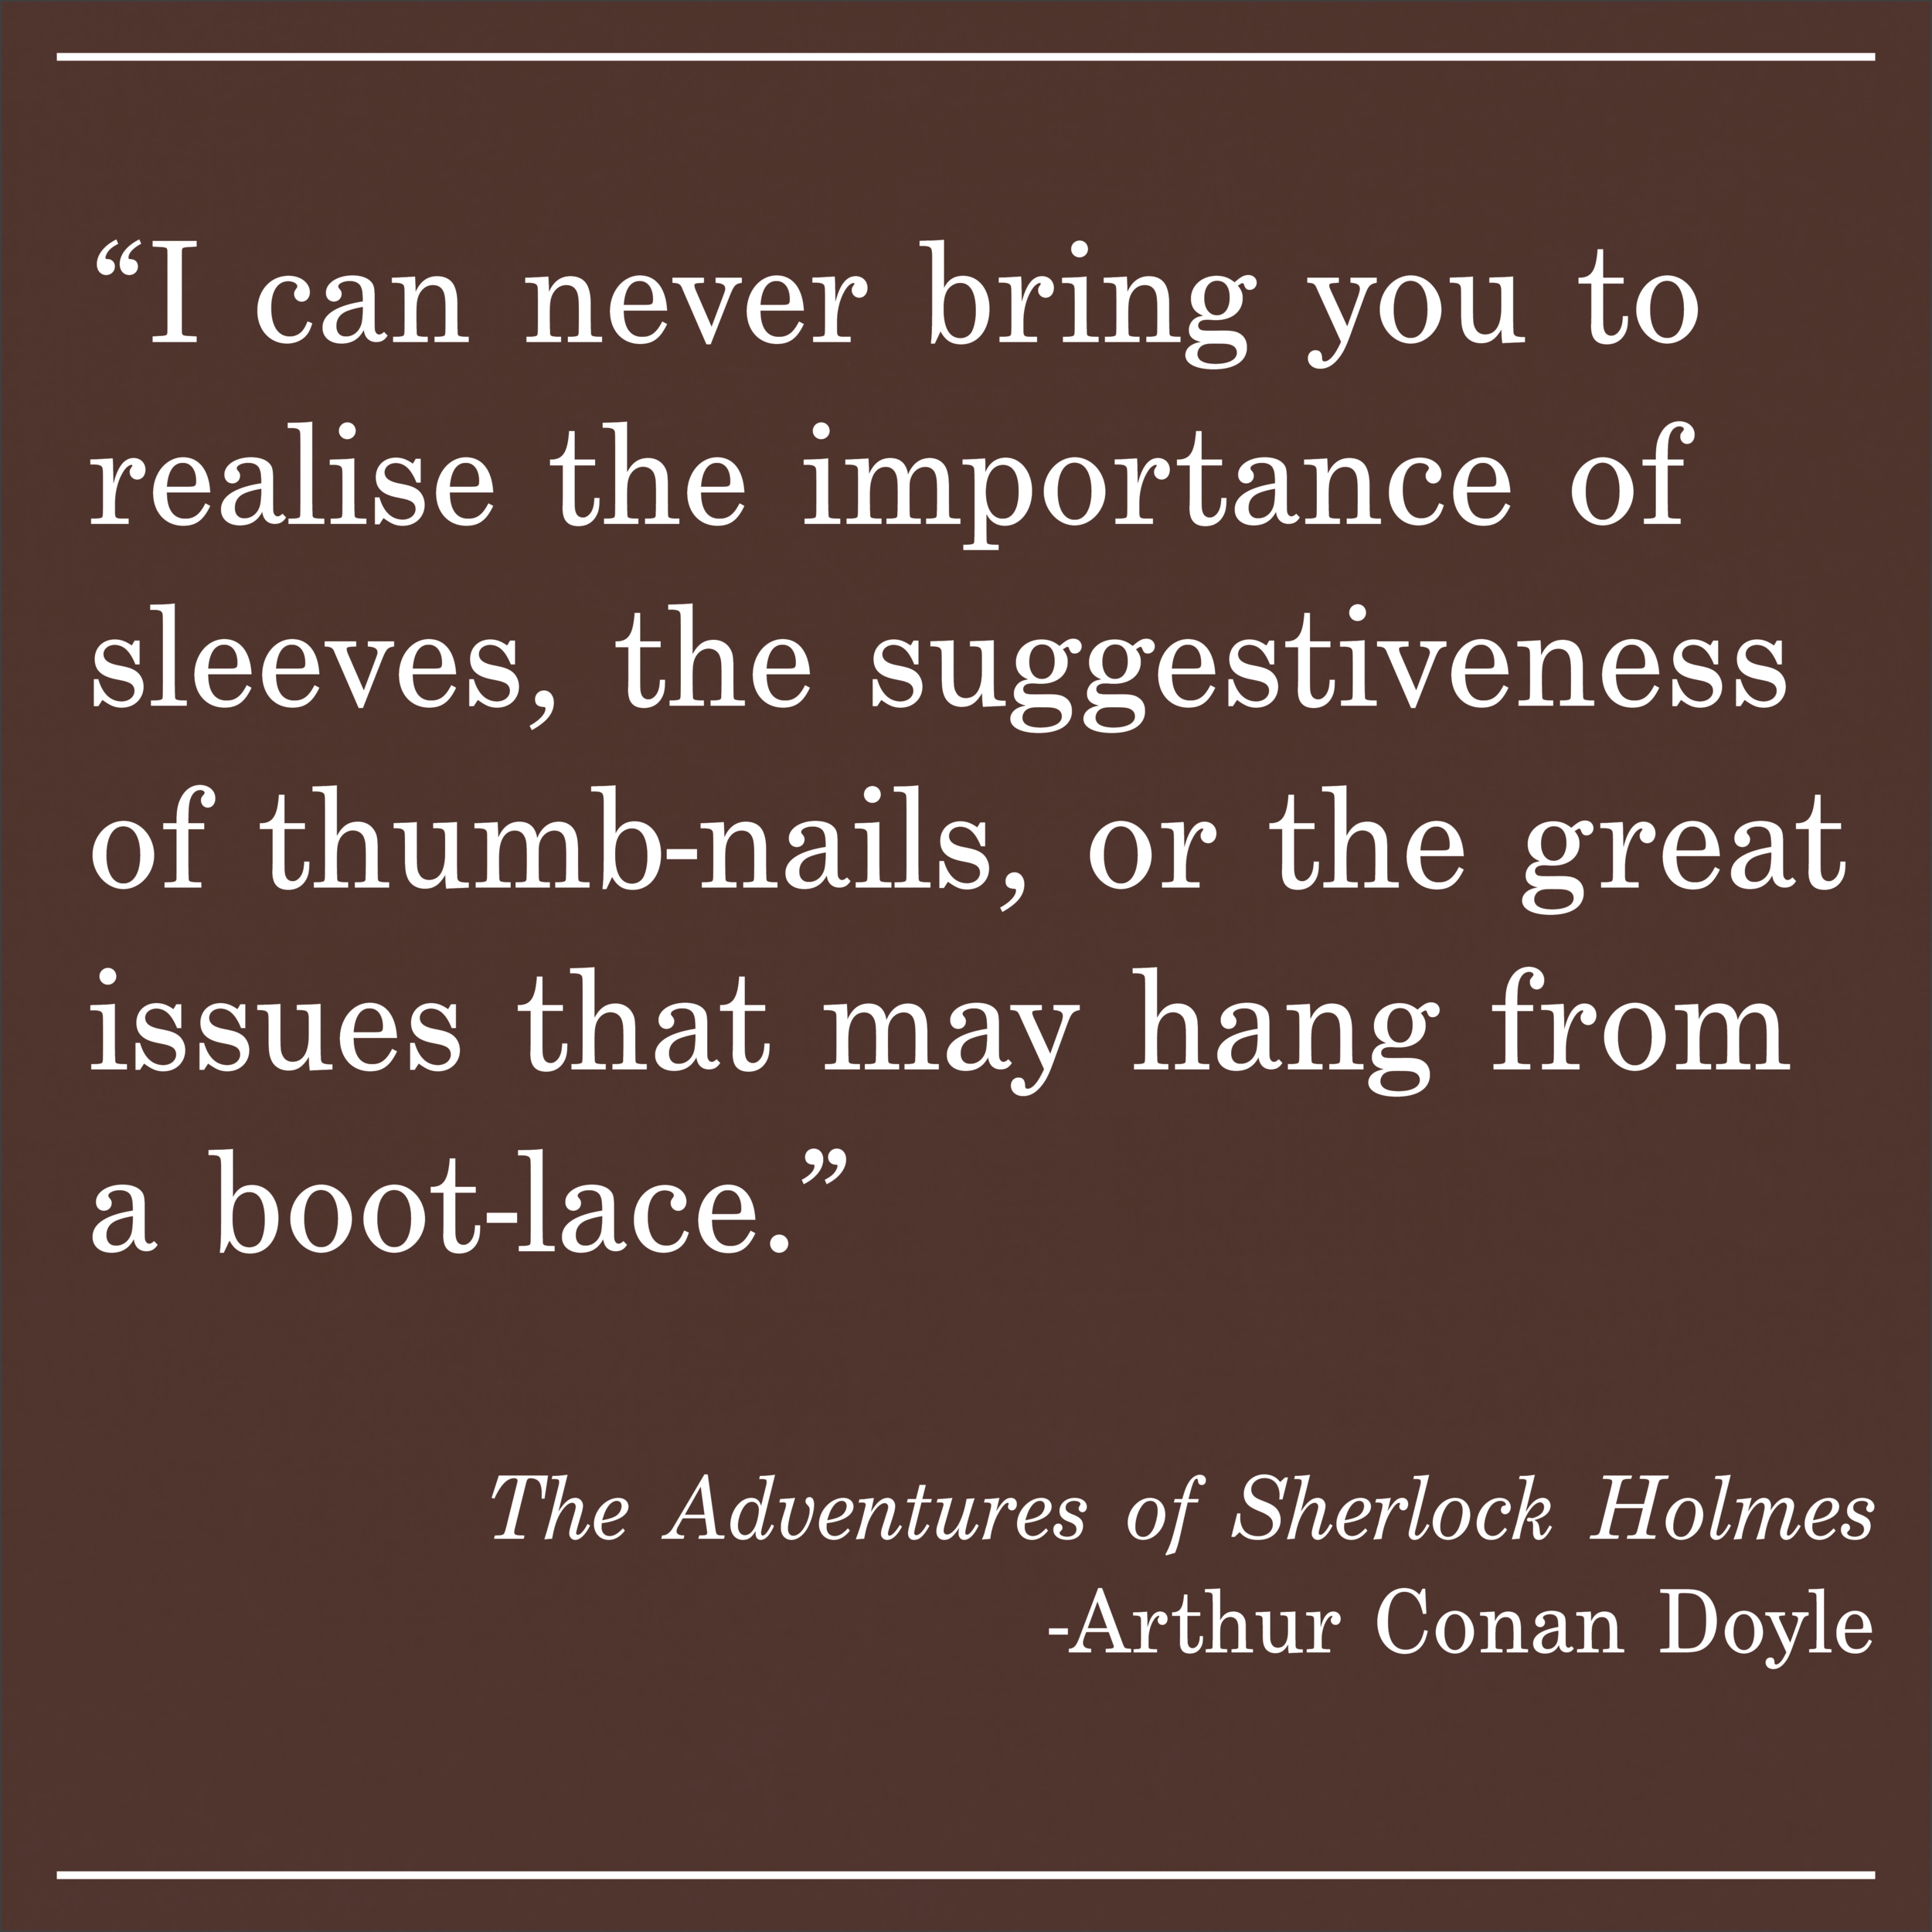 Daily Quotes The Adventures of Sherlock Holmes Arthur Conan Doyle